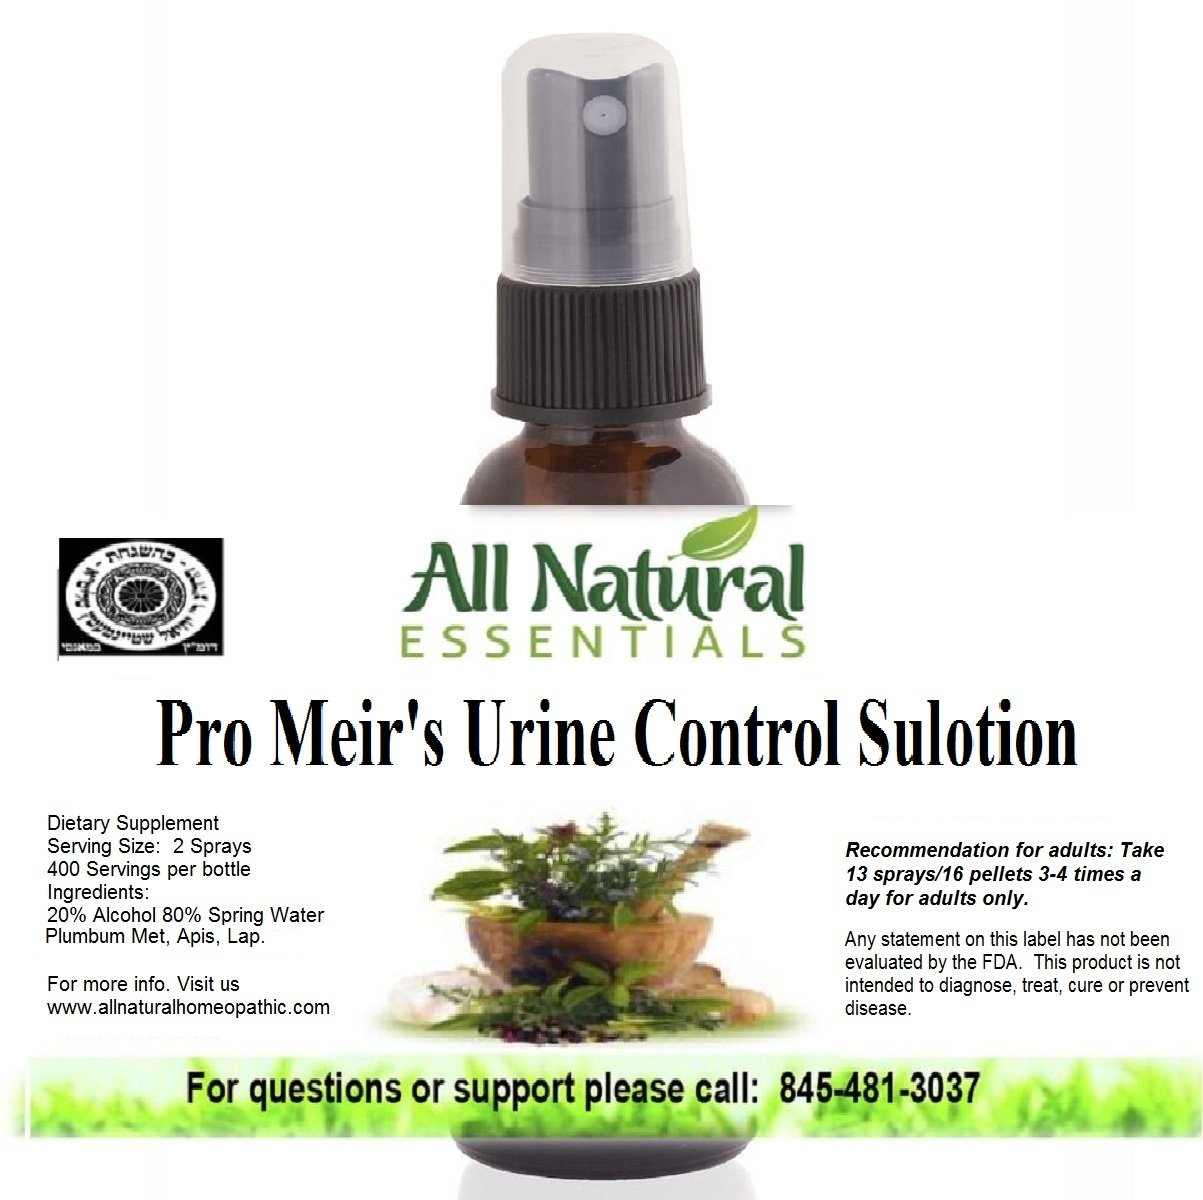 Amazon.com: Pro Meir's Urine Control Sulotion 1oz Homeopathic Remedy,  Bedwetting, Overactive Bladder Control, Stops Frequent Urination, ...